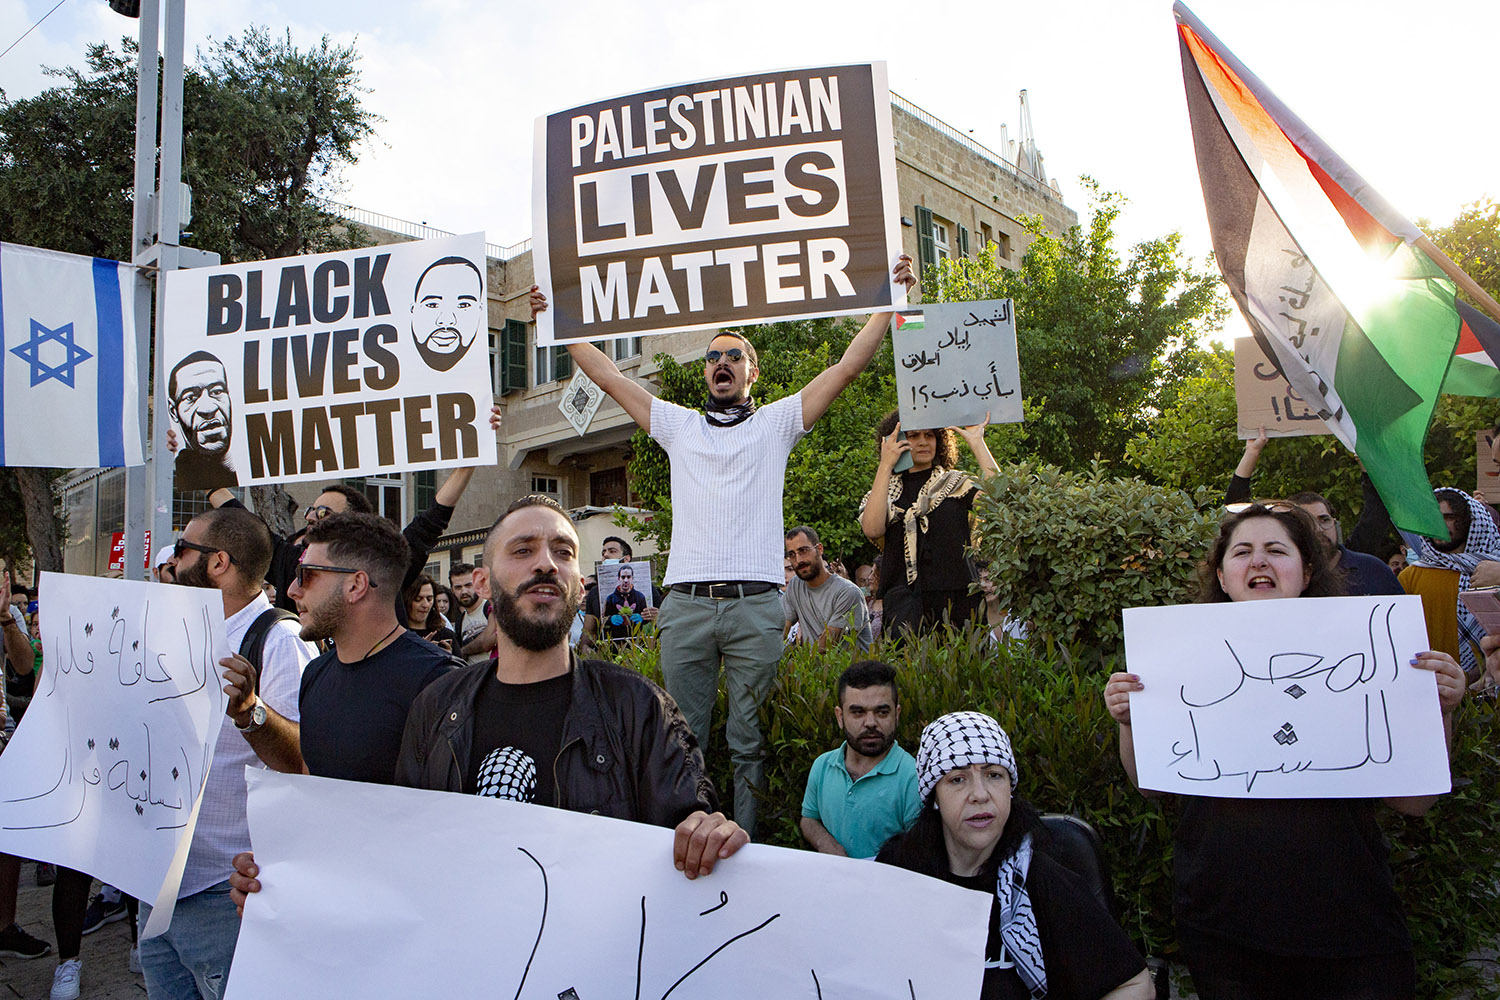 Hundreds of Palestinian citizens of Israel protest in the city of Haifa, Israel, on June 2 against the Israeli police killing of an unarmed autistic Palestinian man just days earlier, tying the incident to the police killing of George Floyd in the United States.